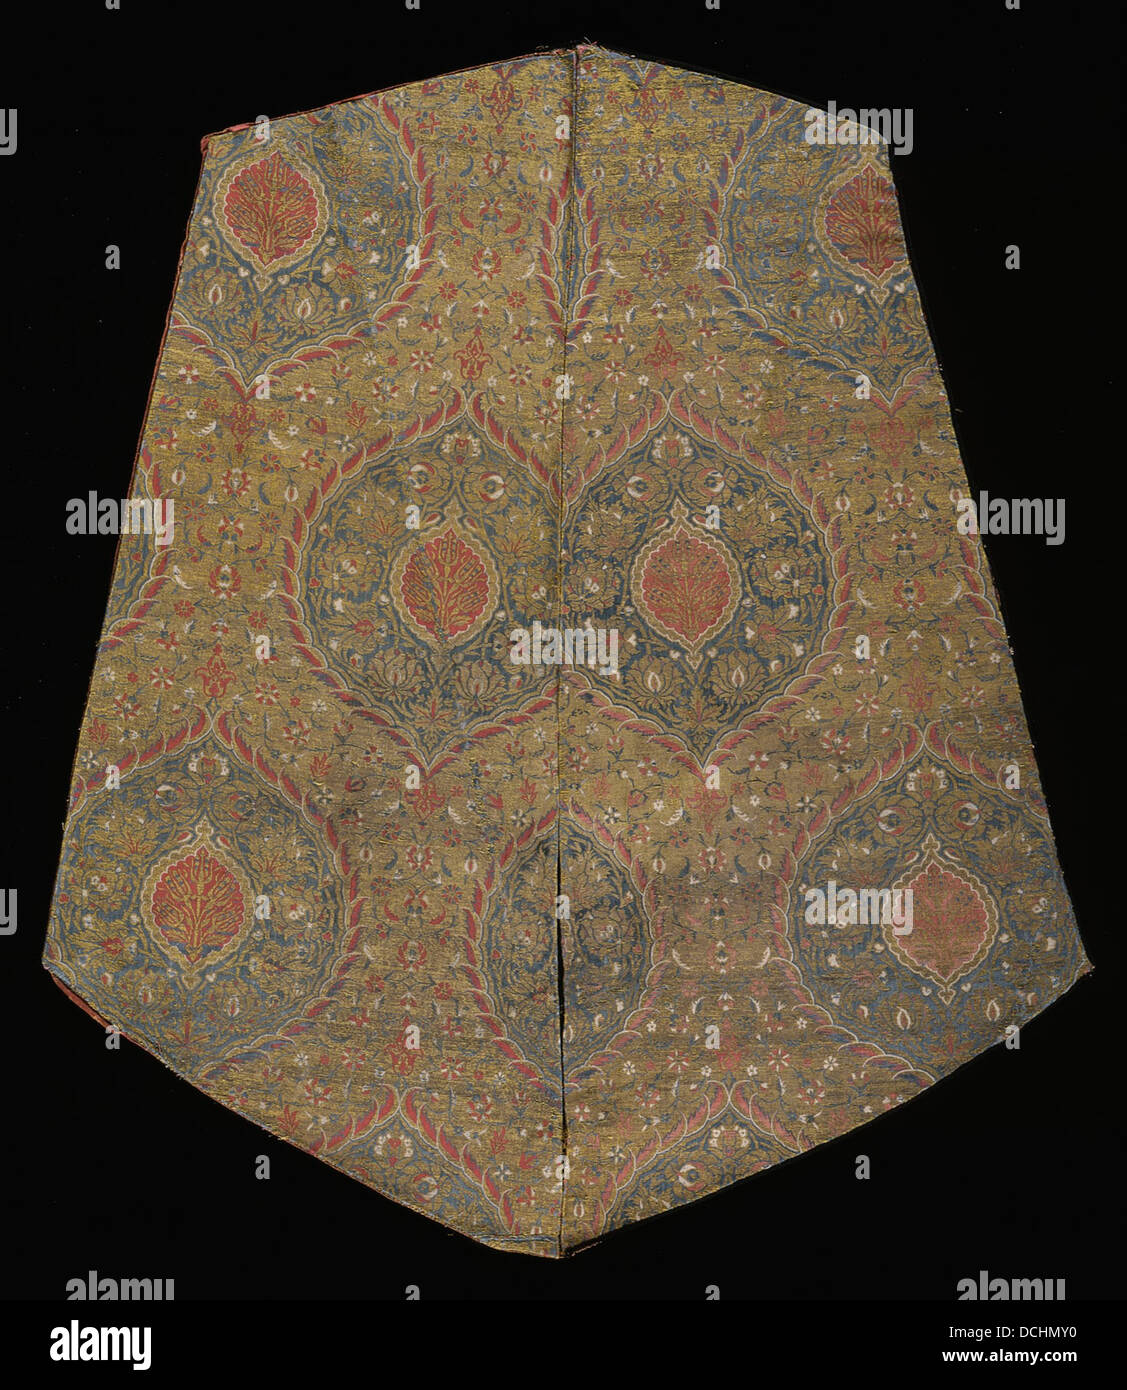 Textile with Design of Staggered Floral Ogives M.39.2.469 - Stock Image